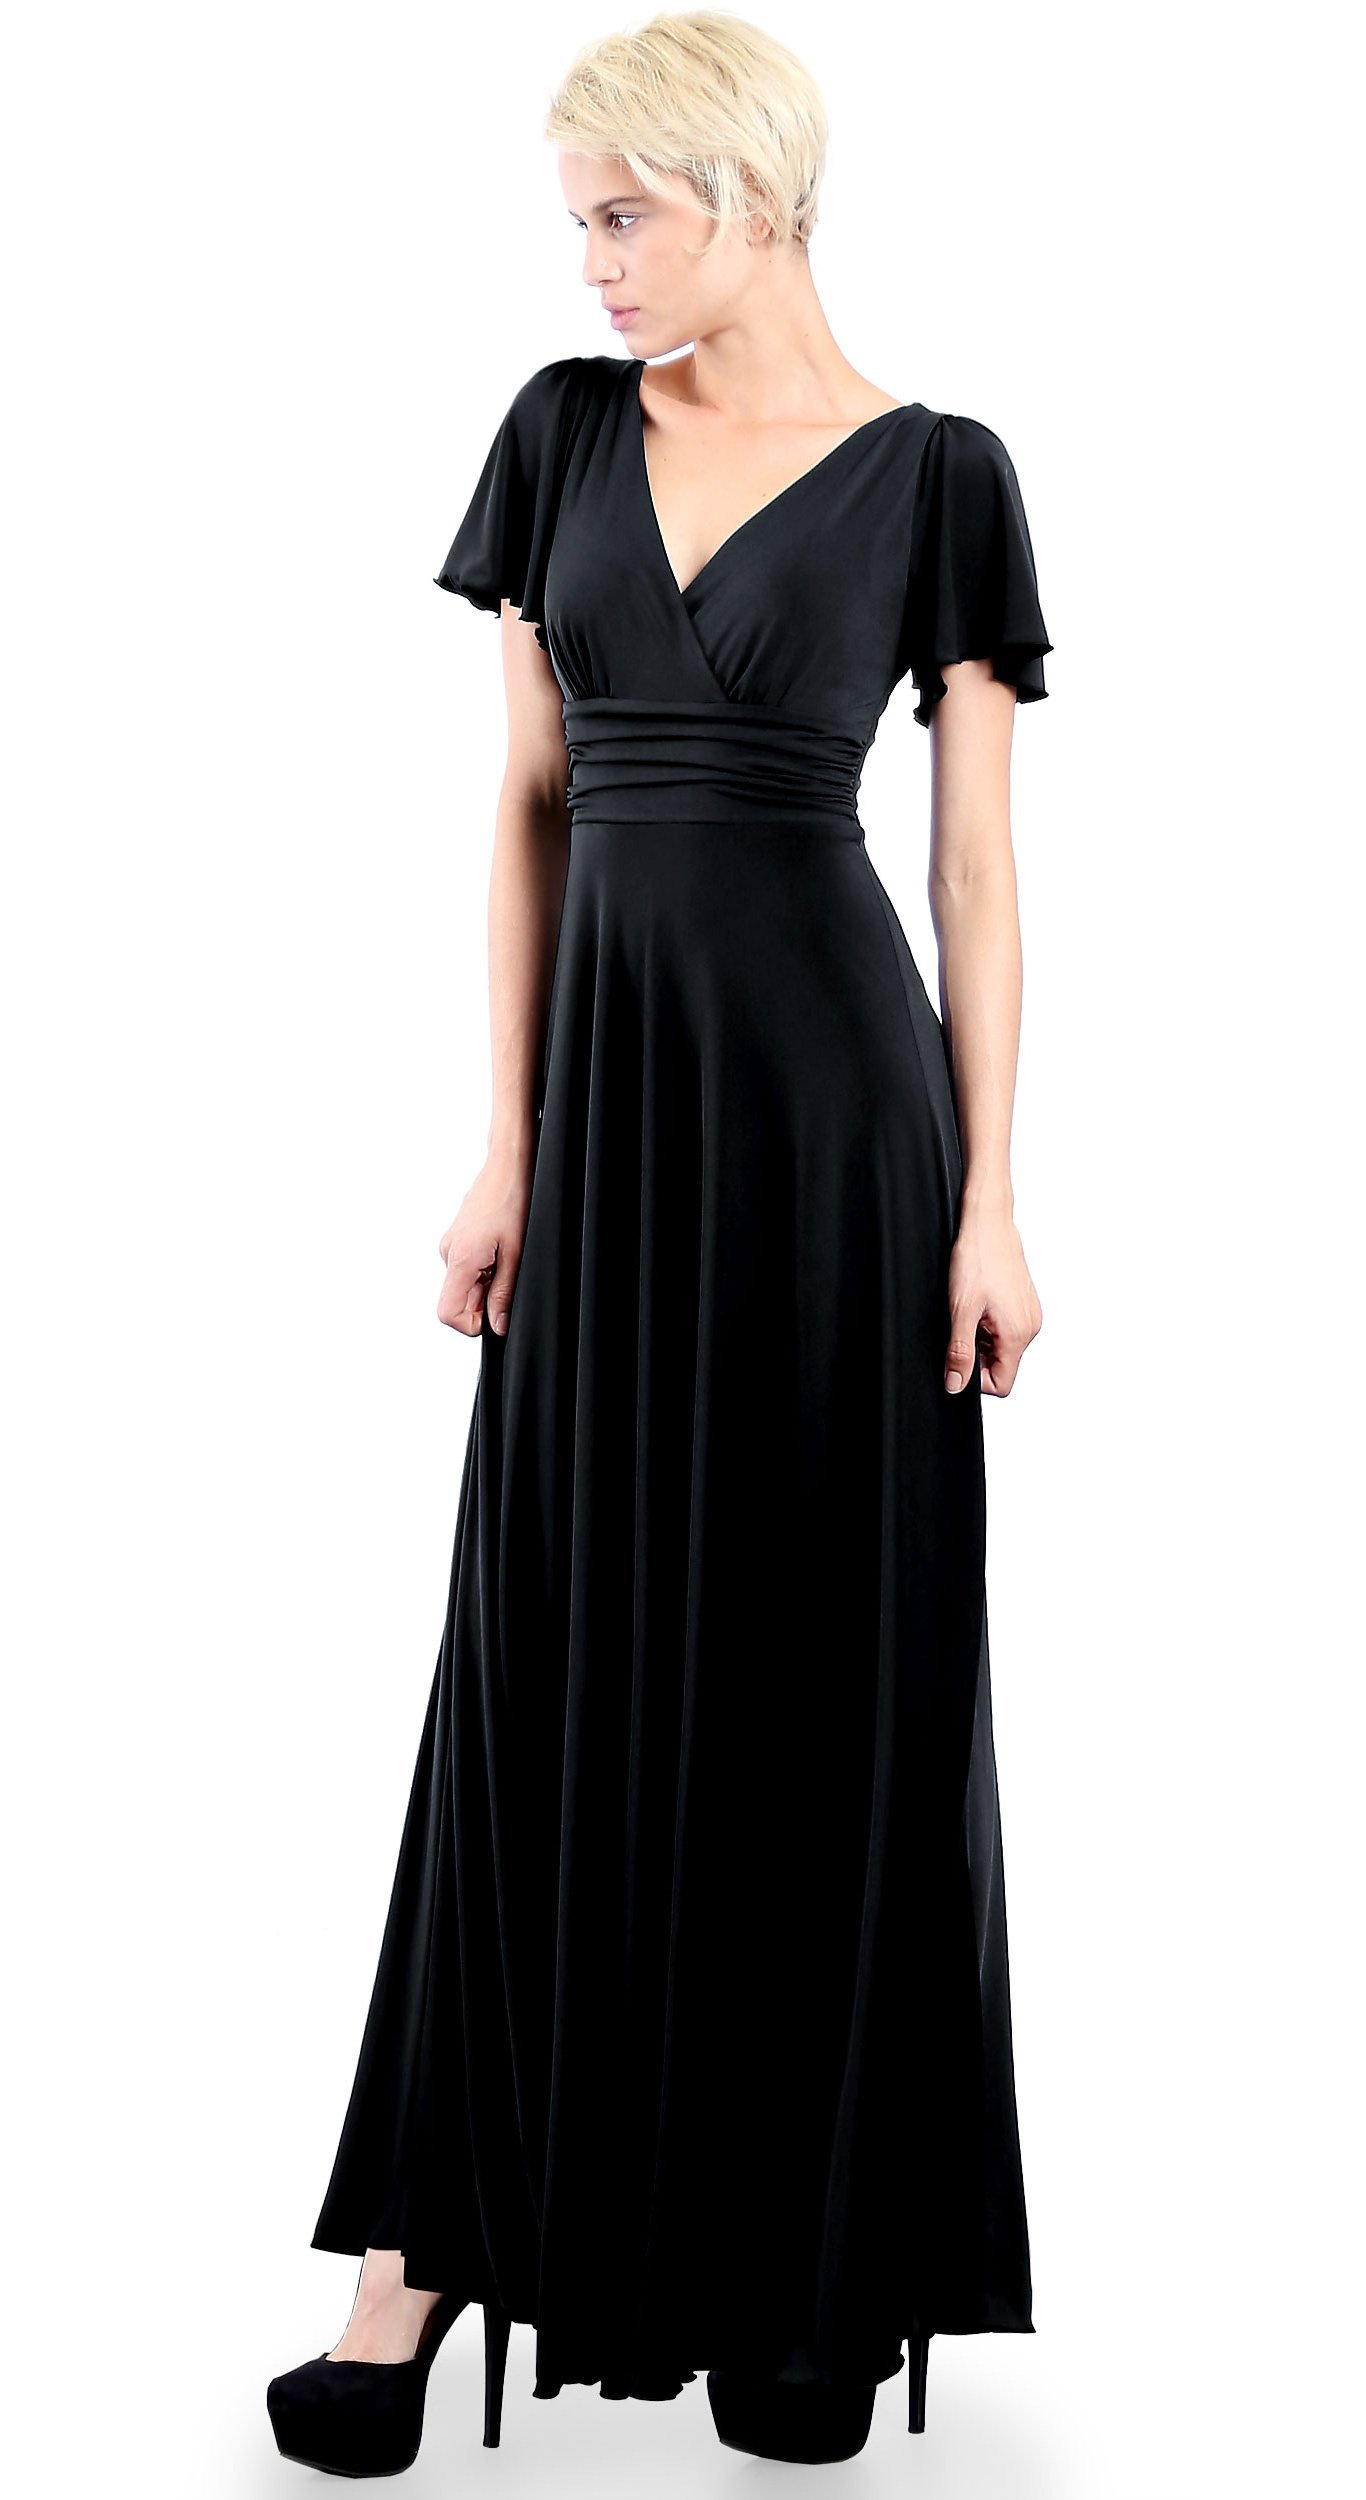 3dec8a5fe12f EVANESE Women's Slip on Evening Party Formal Long Dress Gown with Short  Sleeves XL, Black